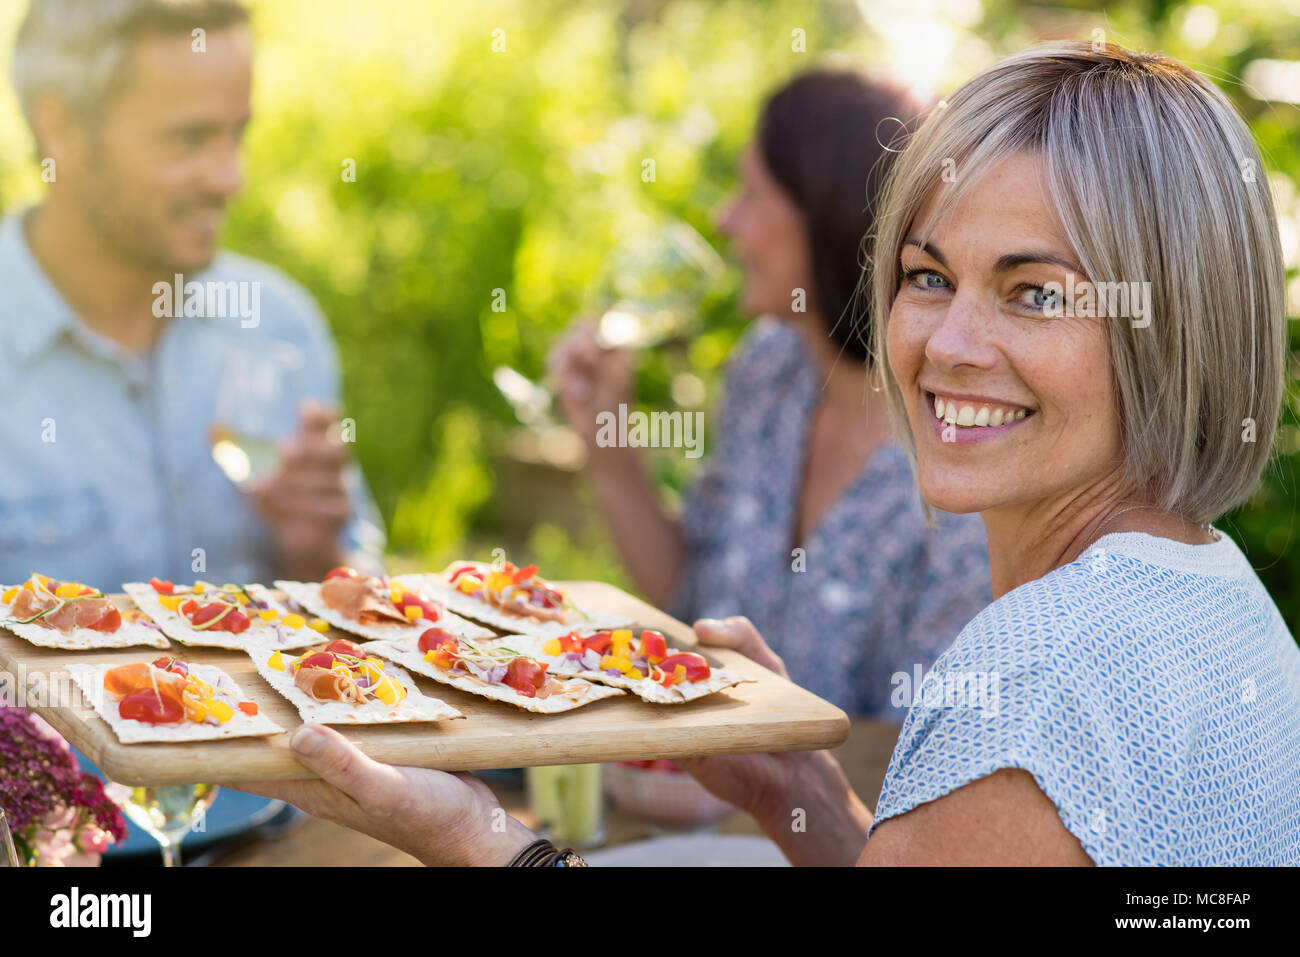 In summer. Group of friends gathered around a table in the garden to share a meal. a beautiful woman serves them snacks on a platter while looking at  - Stock Image